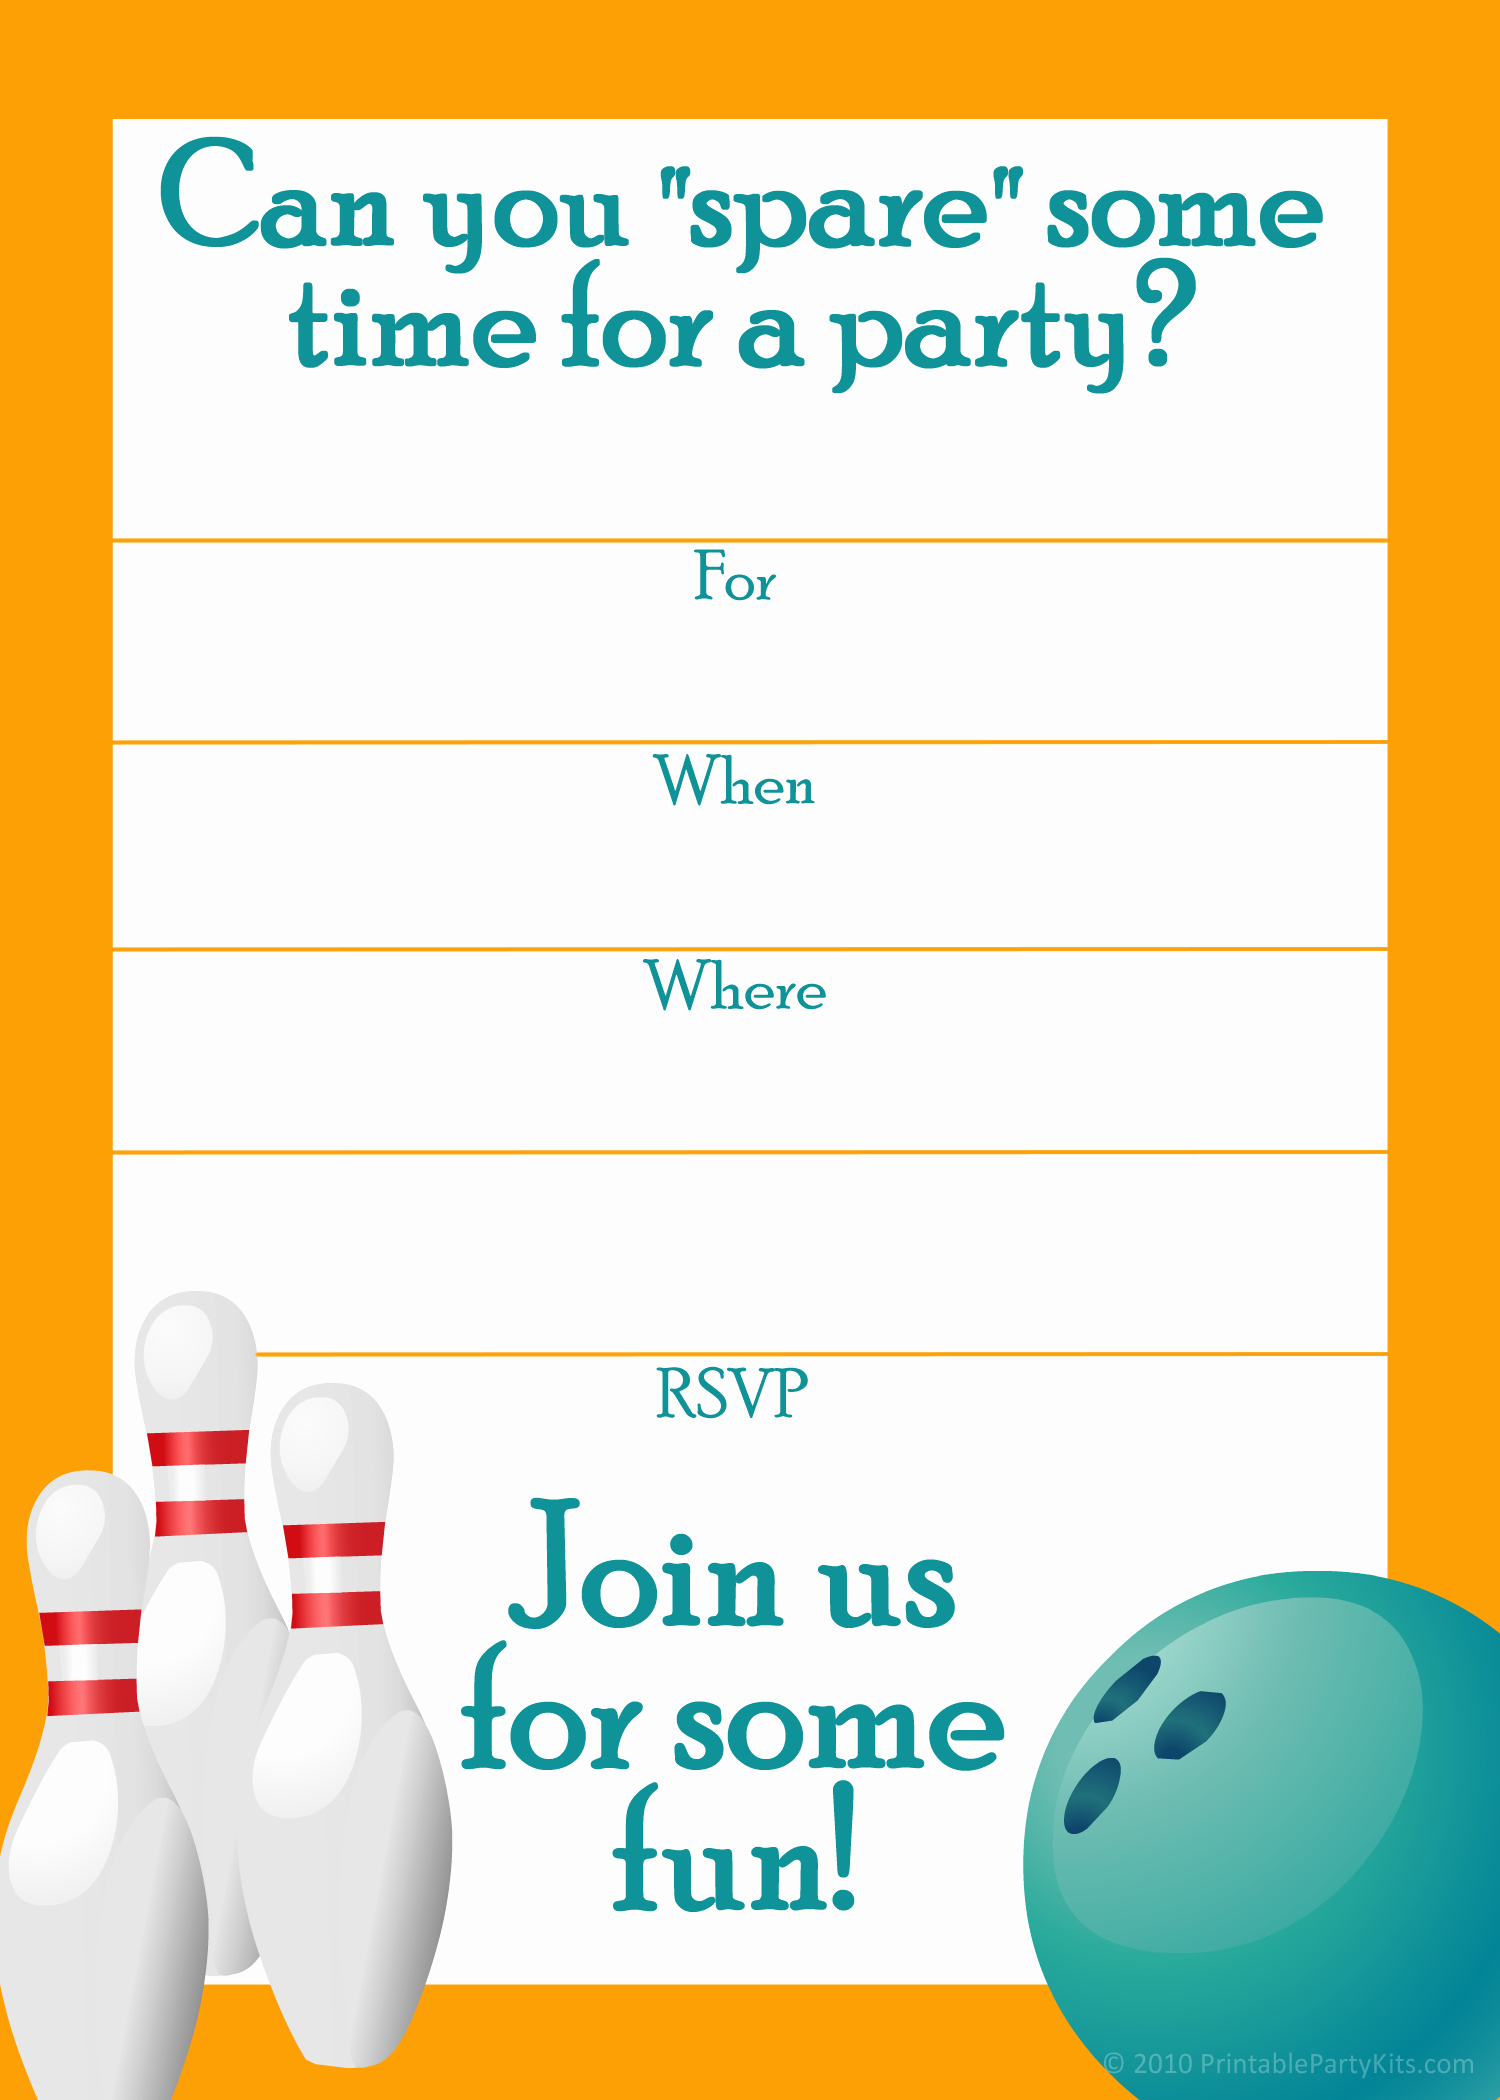 Bowling Party Invitation Template Free Unique Free Printable Sports Birthday Party Invitations Templates